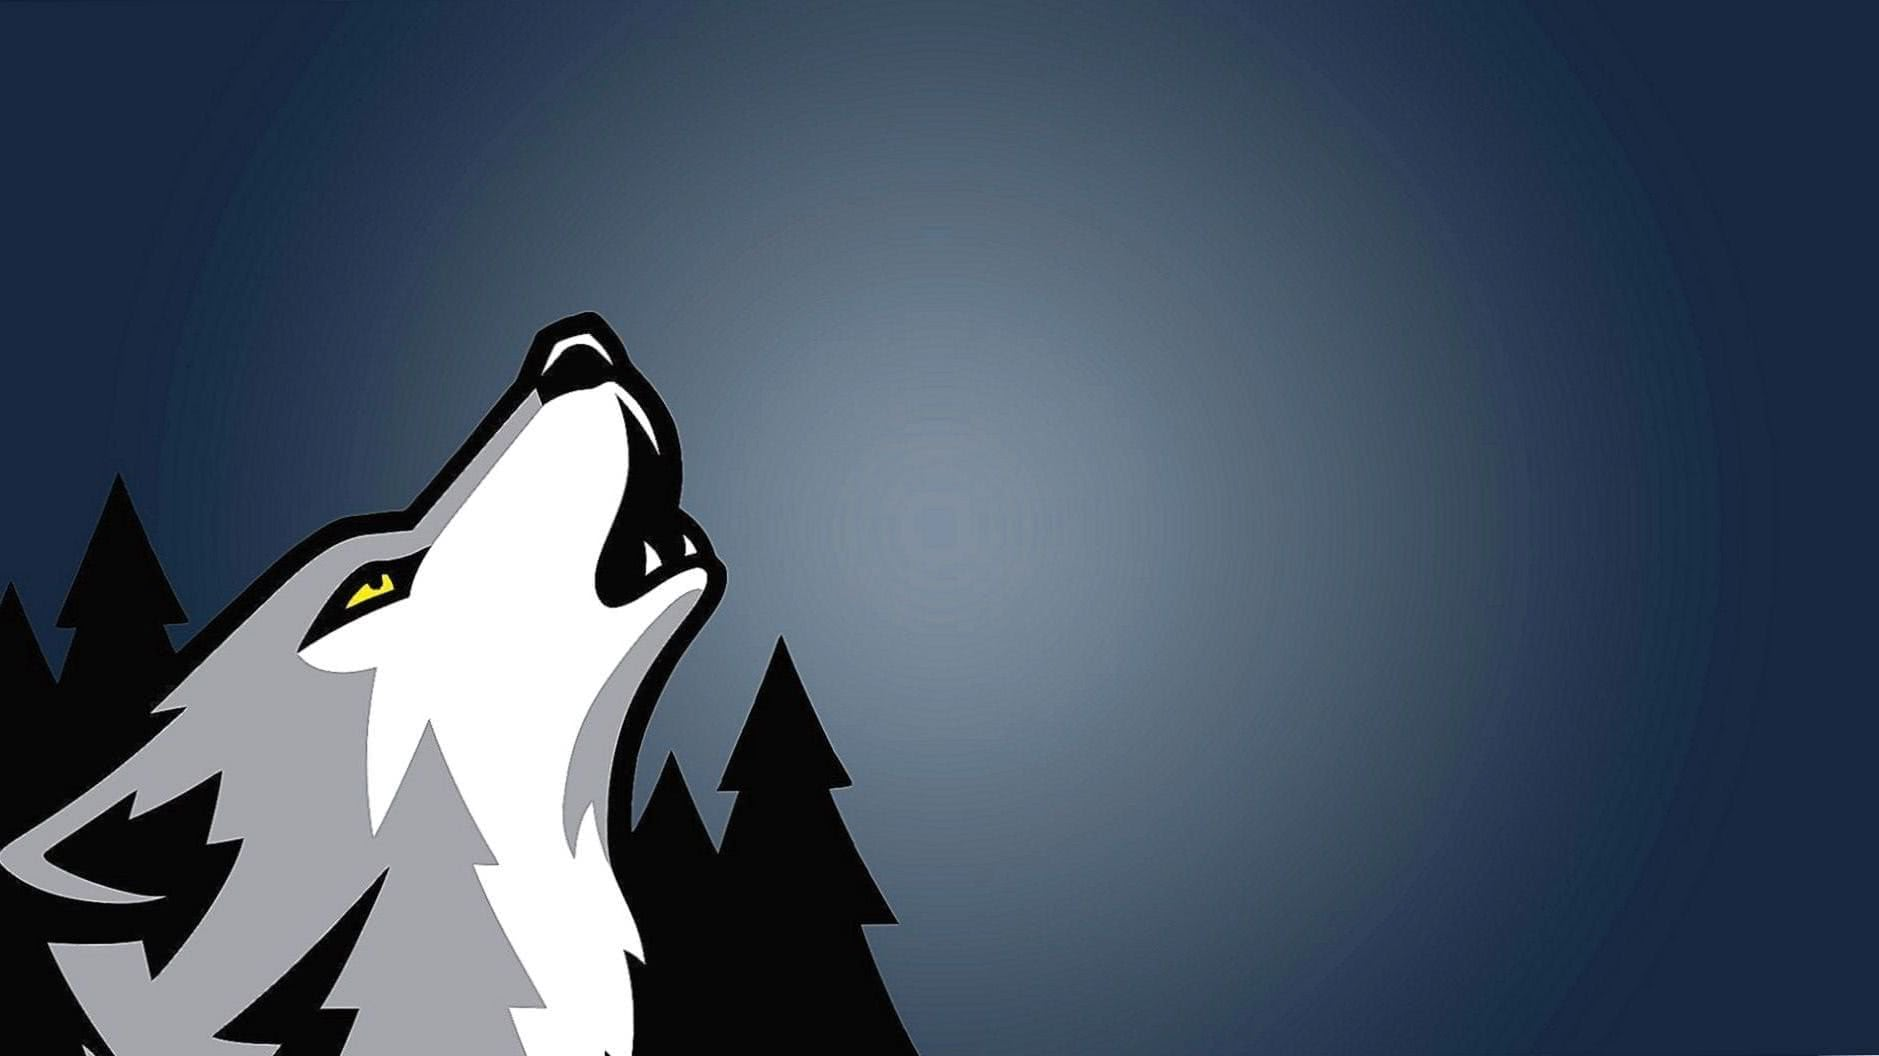 Wolf Logo Wallpapers Hd Wolf Wallpaperspro